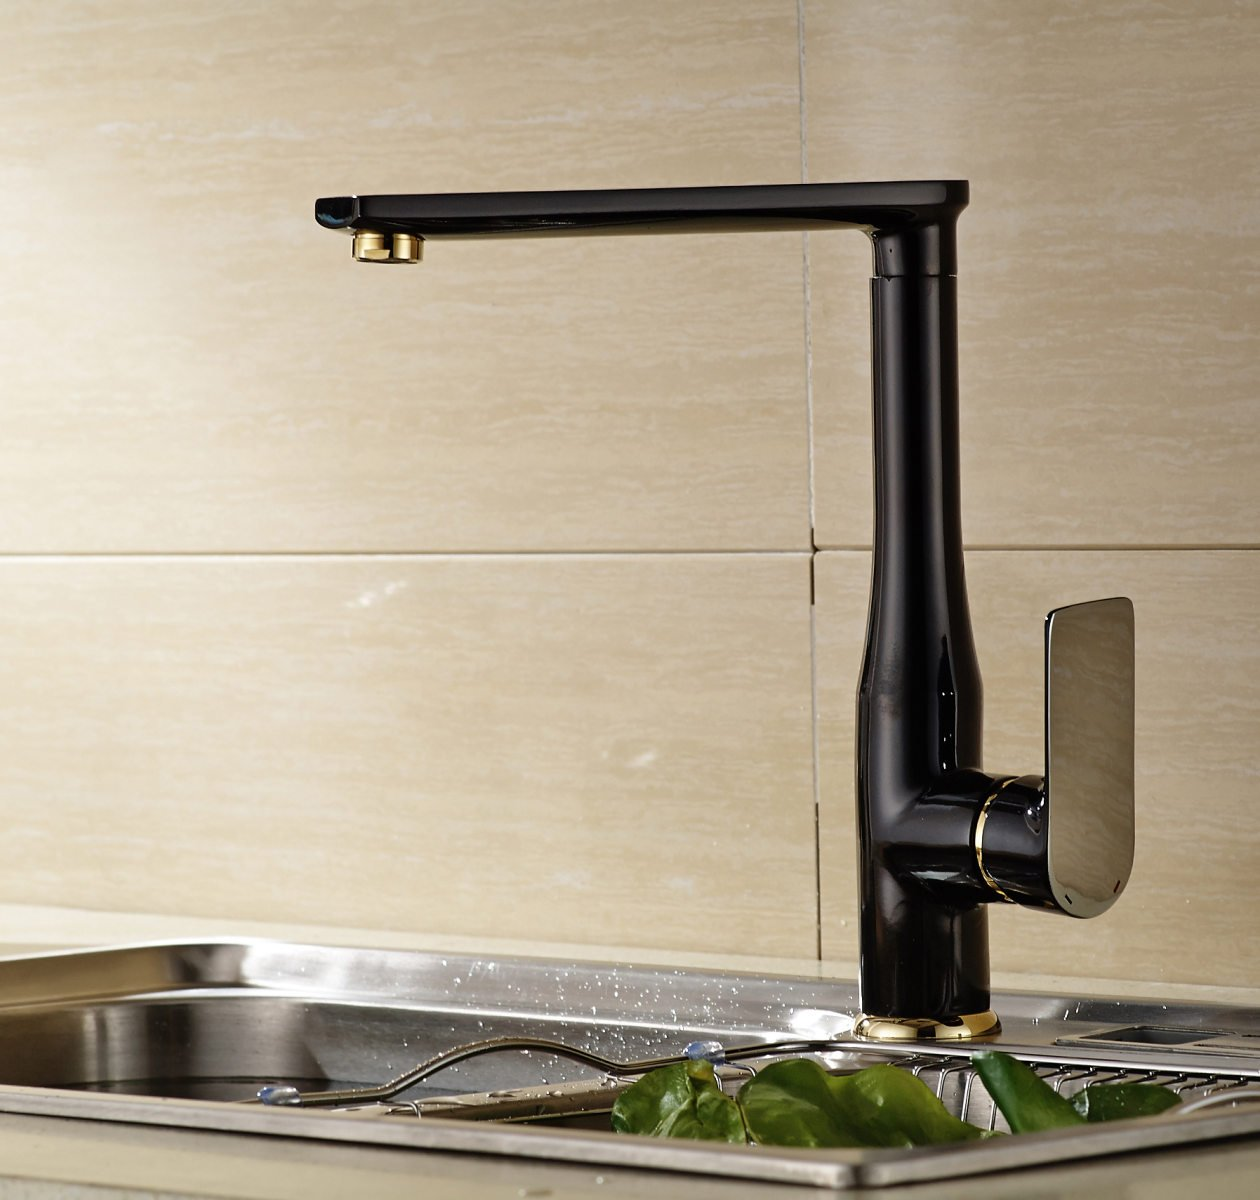 LDONGSH Hotel Copper Hot And Cold Mixed Water Kitchen Paint European Style American Style Satin Finish Wash Basin Faucet,Black